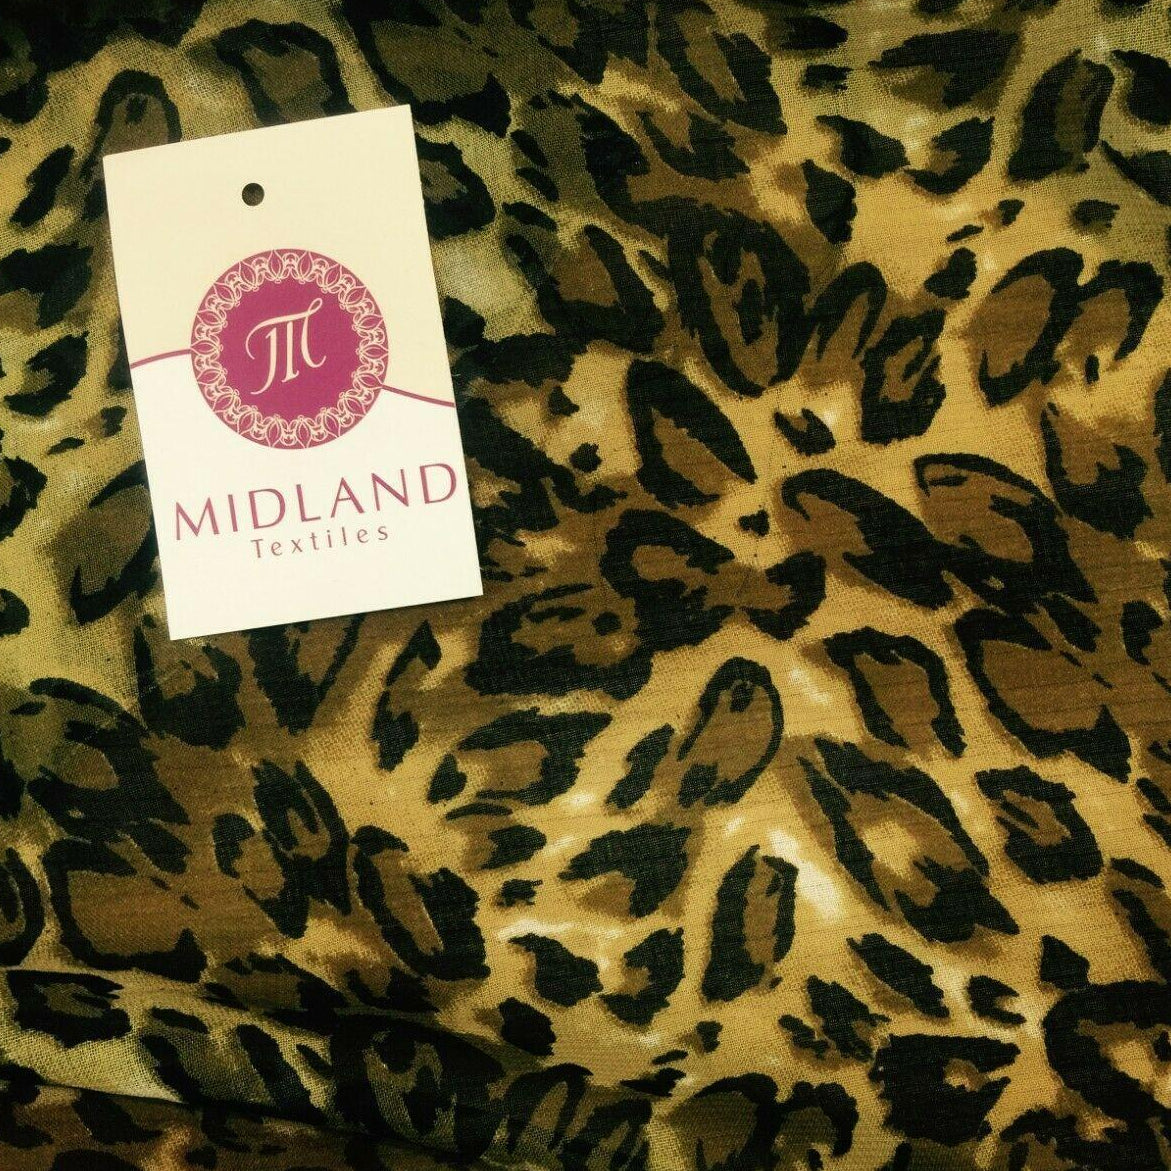 Brown Animal Printed Chiffon fabric 111 cm Wide M161-1 Mtex